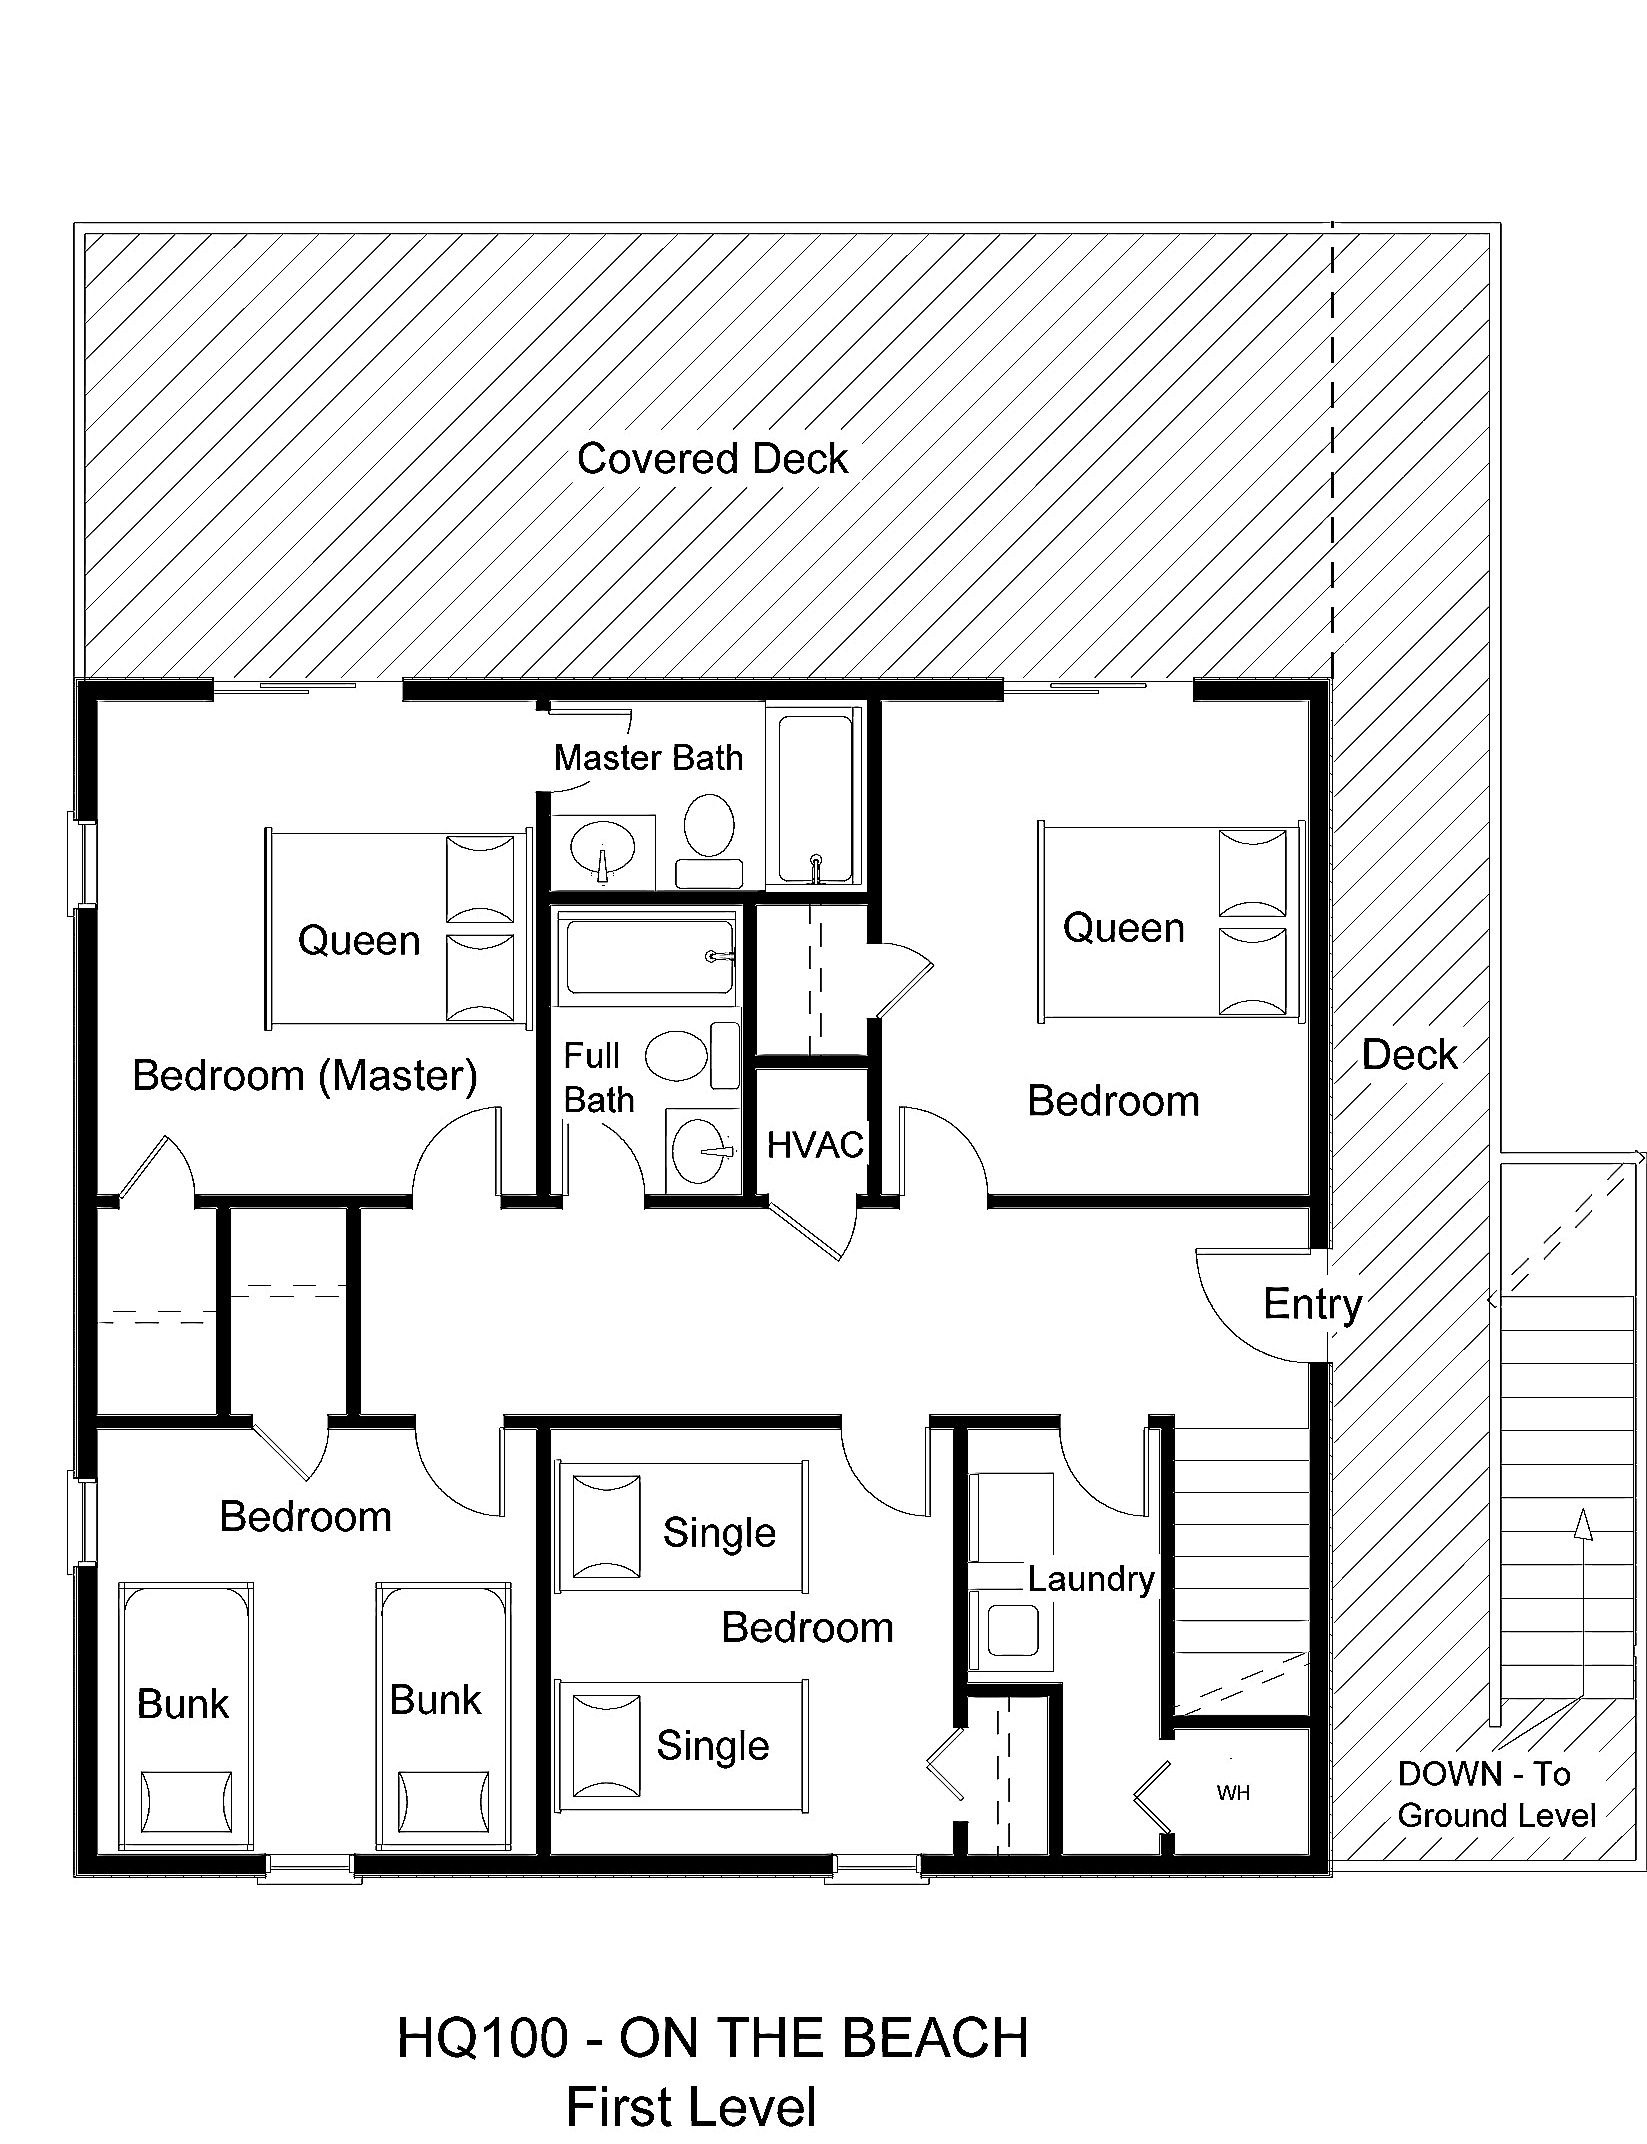 HQ100 On The Beach - Floorplan Level 1